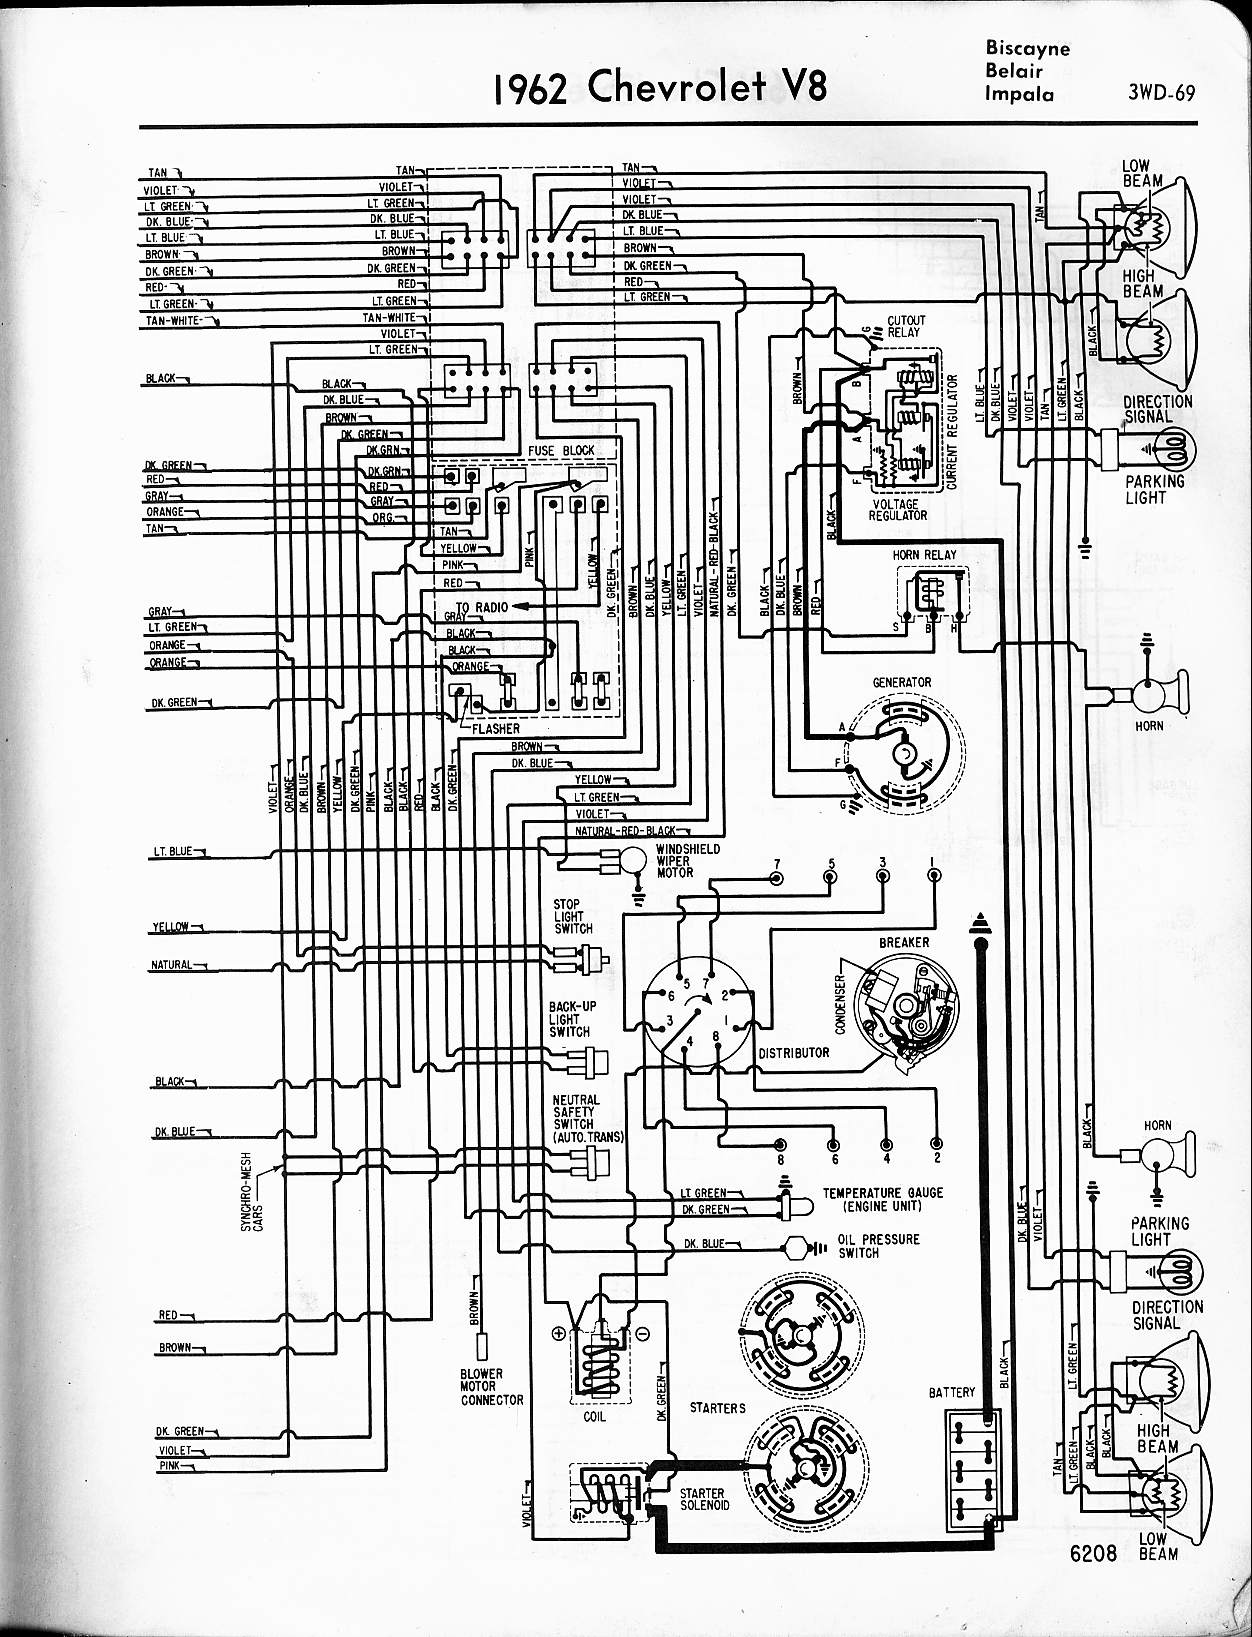 1957 chevy truck wiring harness diagram free 57 65 chevy wiring diagrams 1957 chevrolet truck wiring schematic